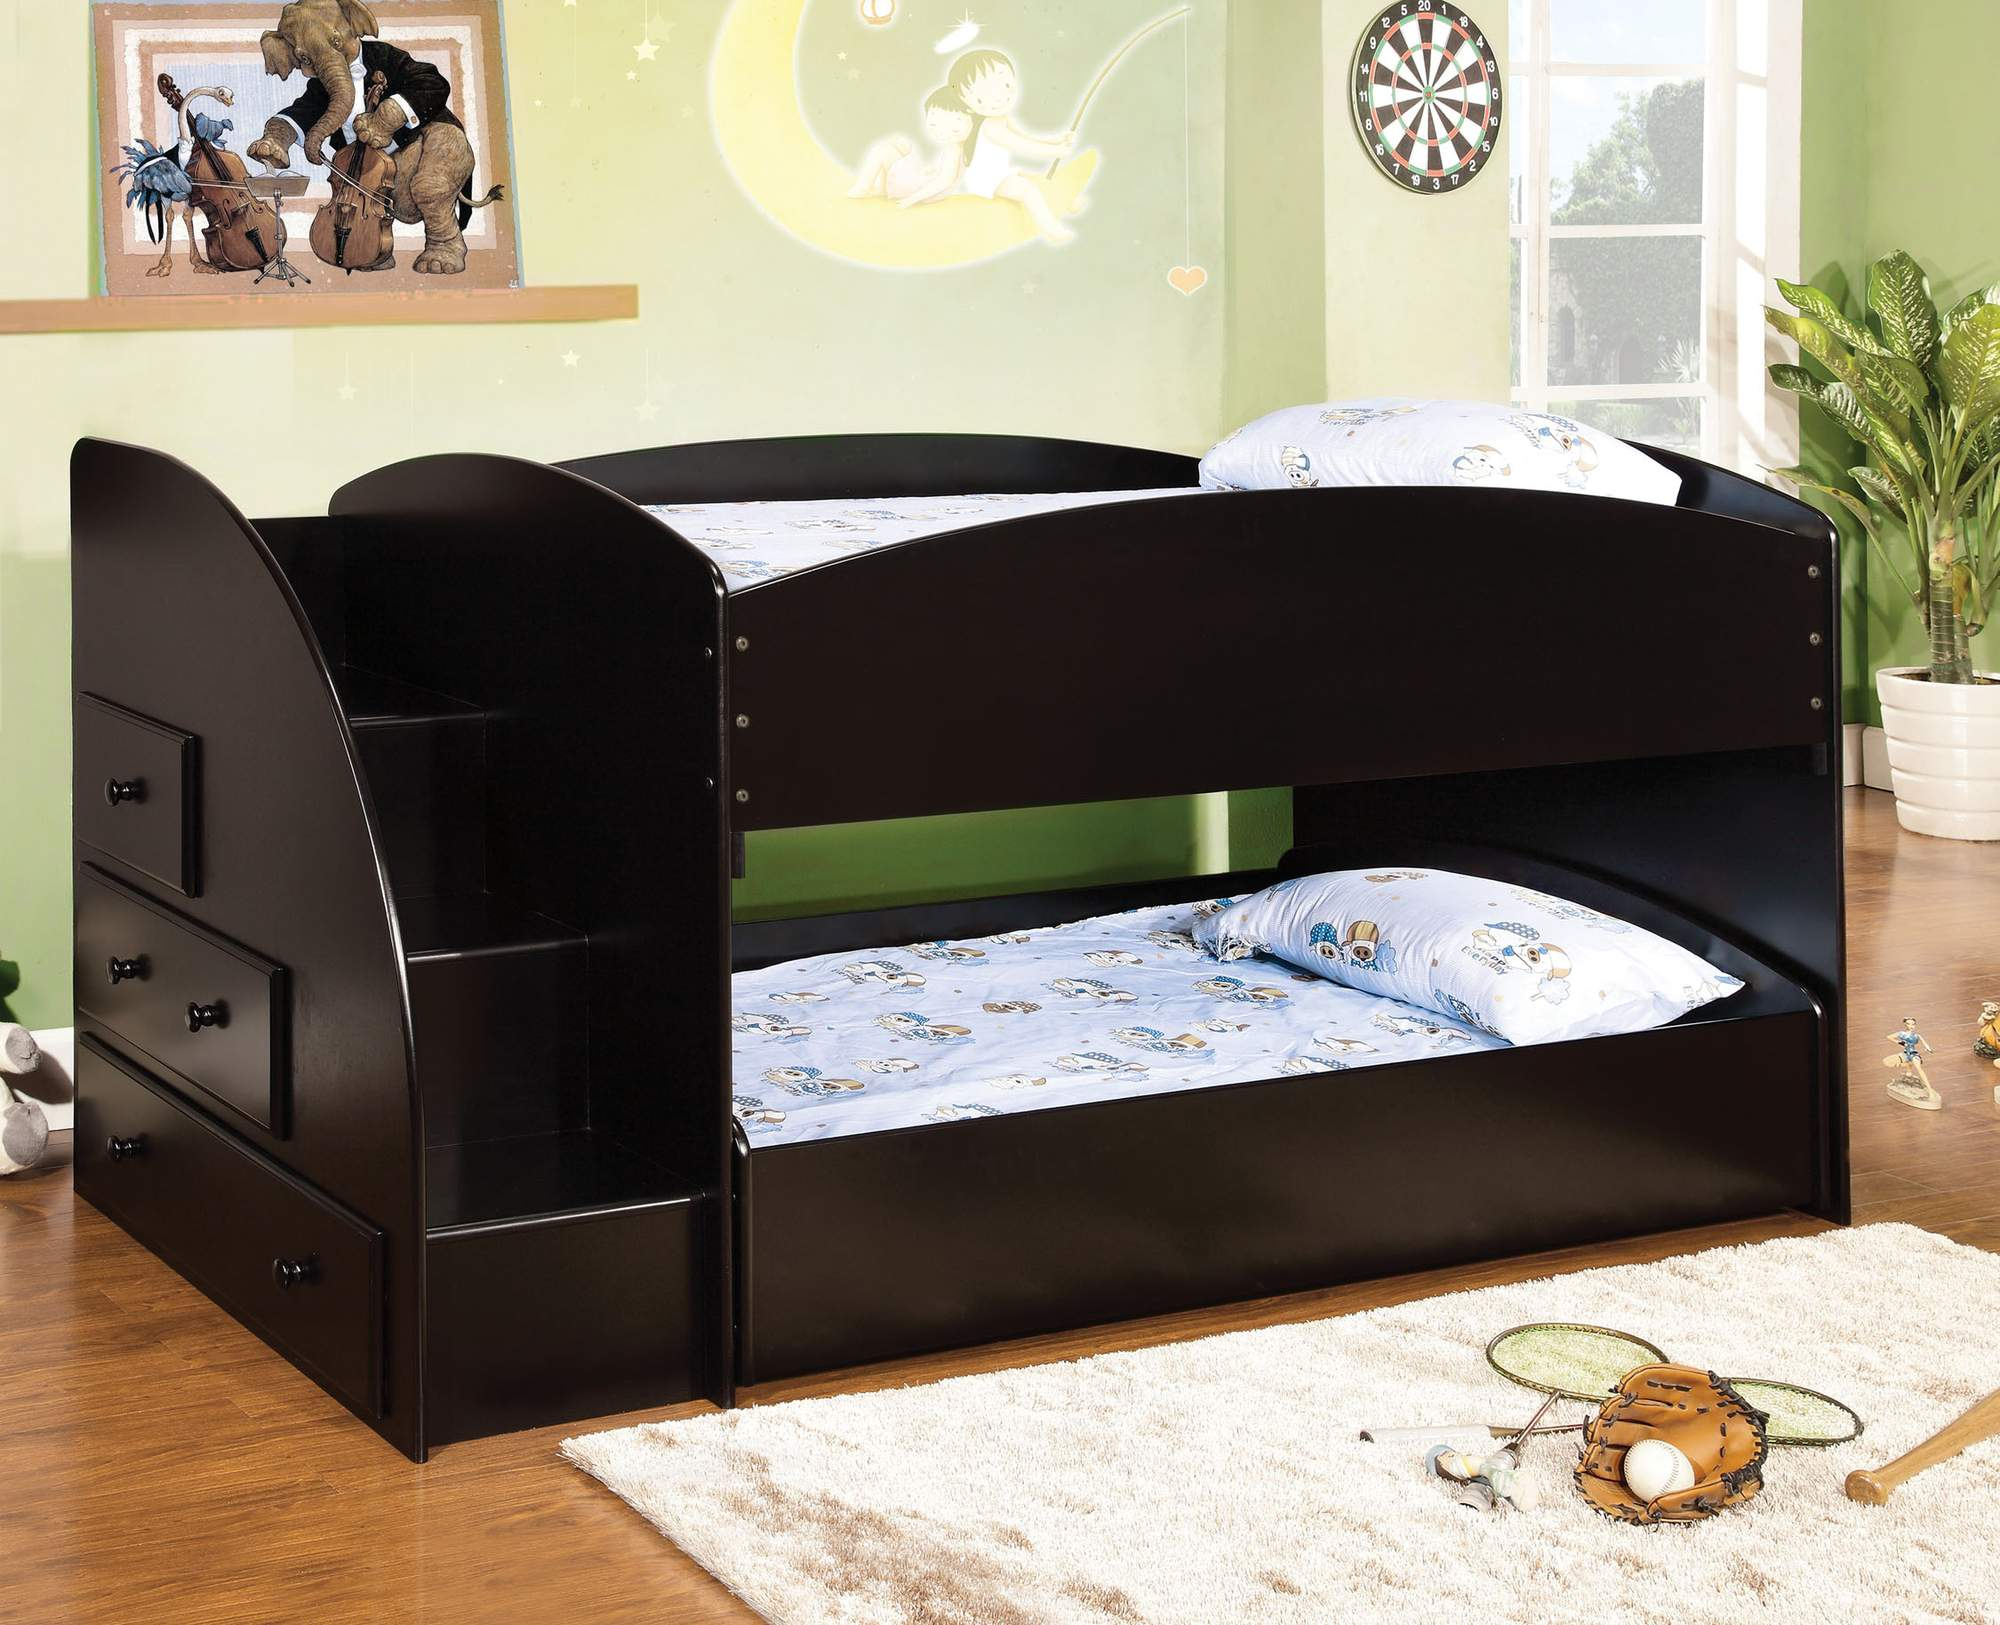 Furniture of America Trula Twin Bunk Bed with Staircase, Multiple Colors by Furniture of America